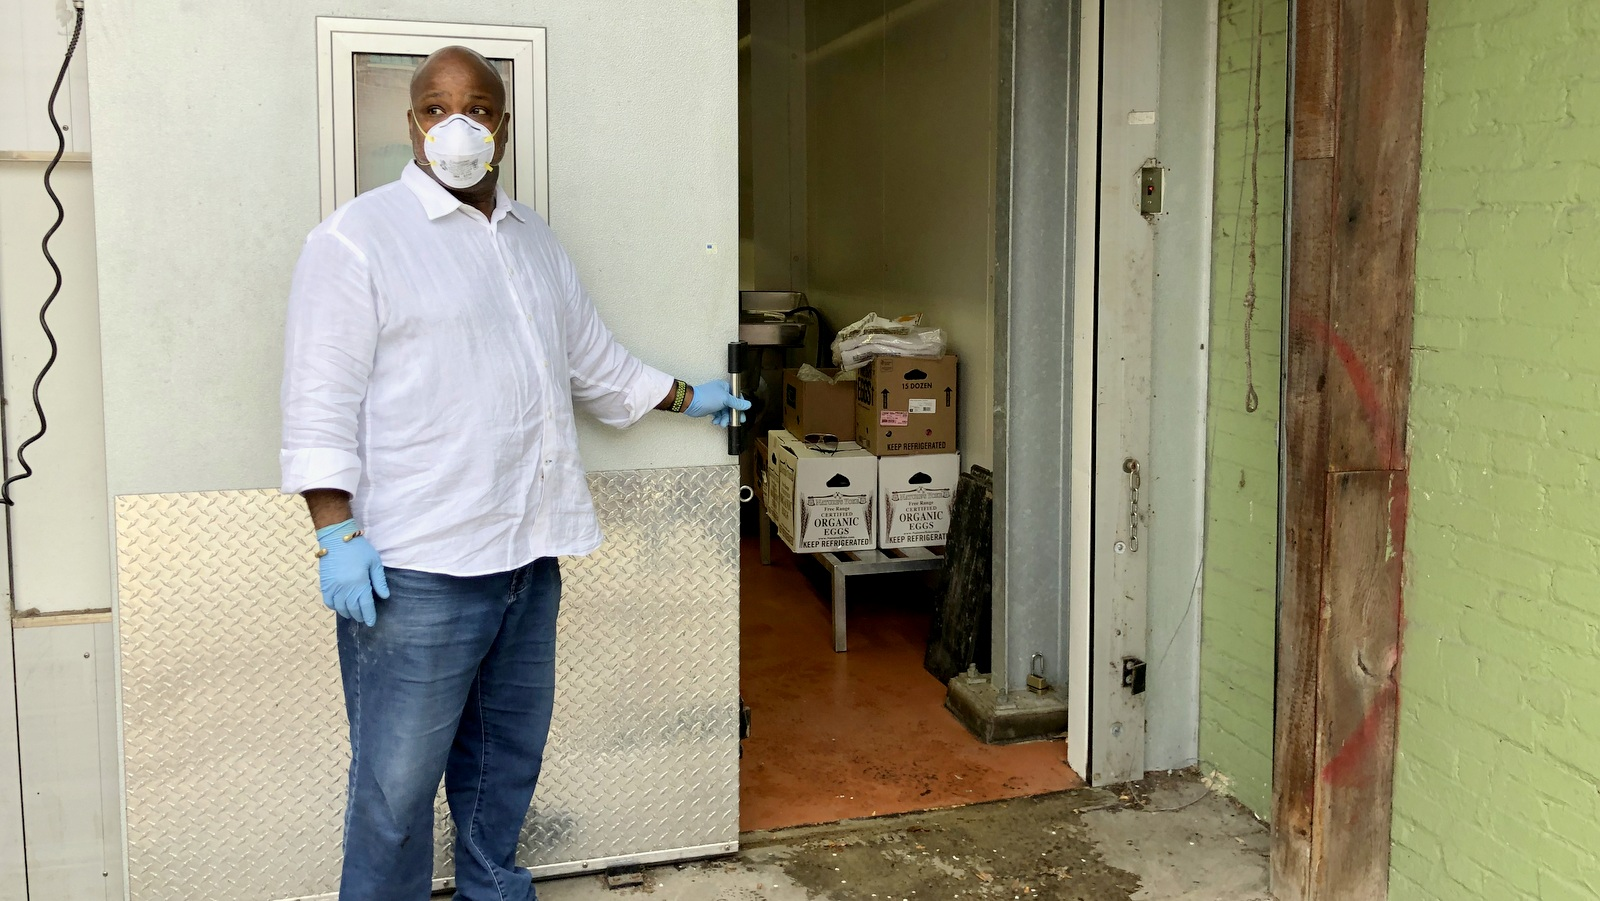 J.C. Faulk shows some of the donated food being stored at the former Parts & Labor restaurant. (Ian Round)